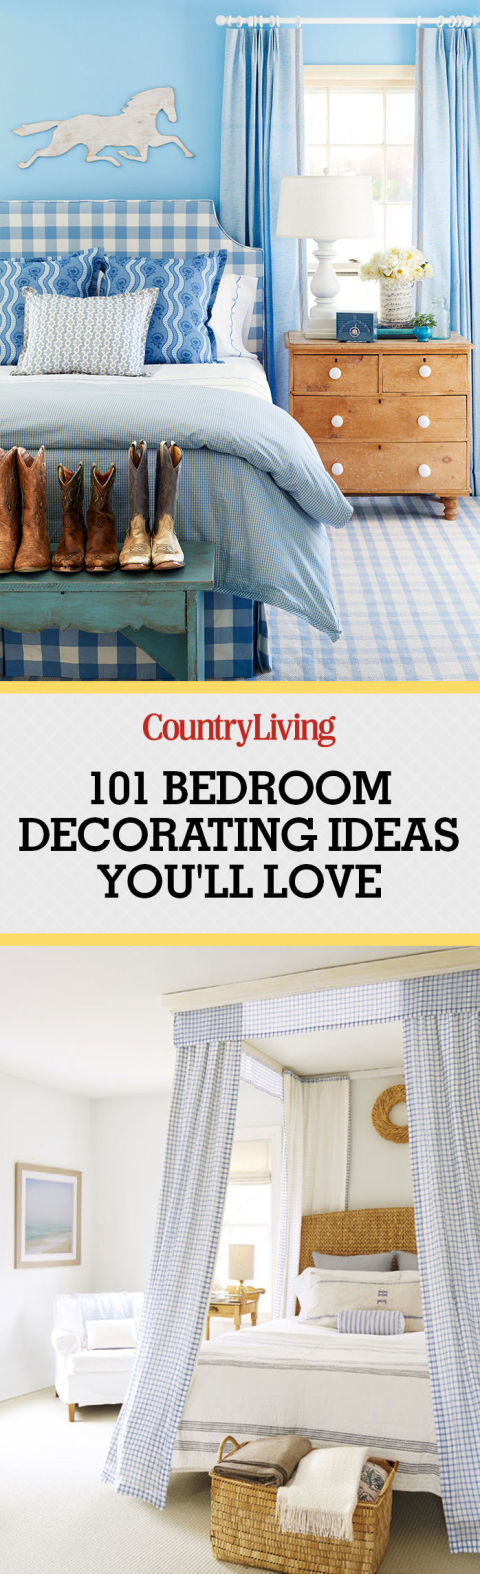 100+ Bedroom Decorating Ideas in 2017 - Designs for Beautiful Bedrooms - decor ideas for bedroom